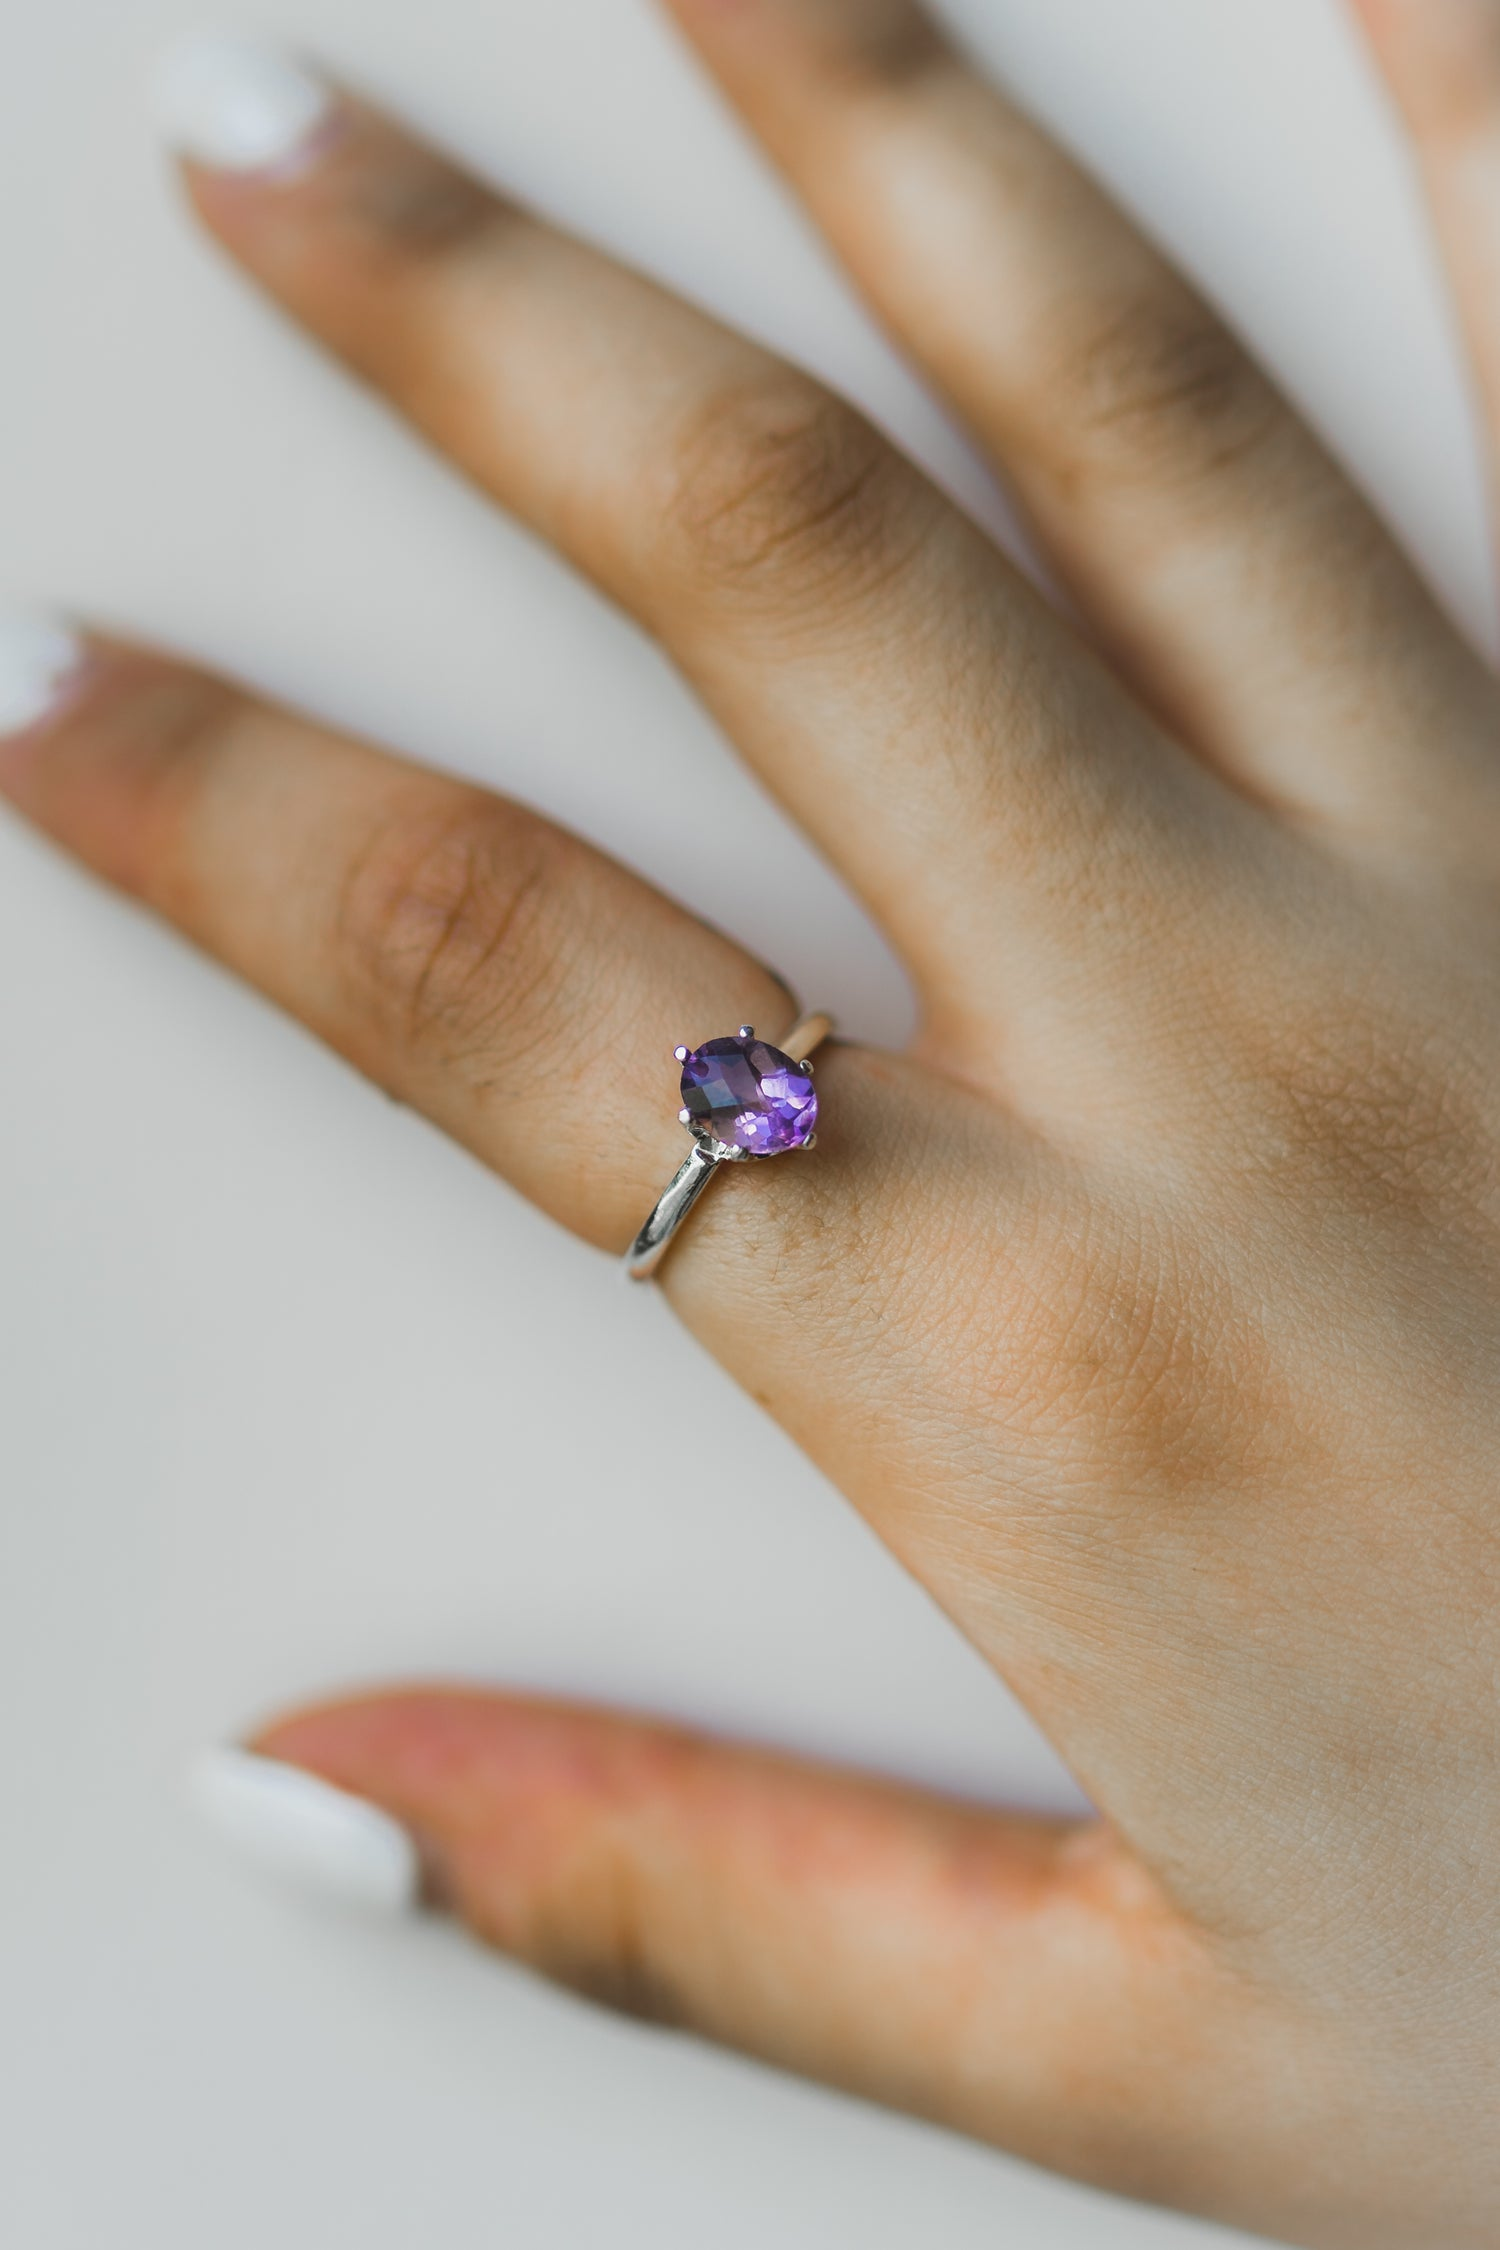 Image of GLOWING Amethyst ring